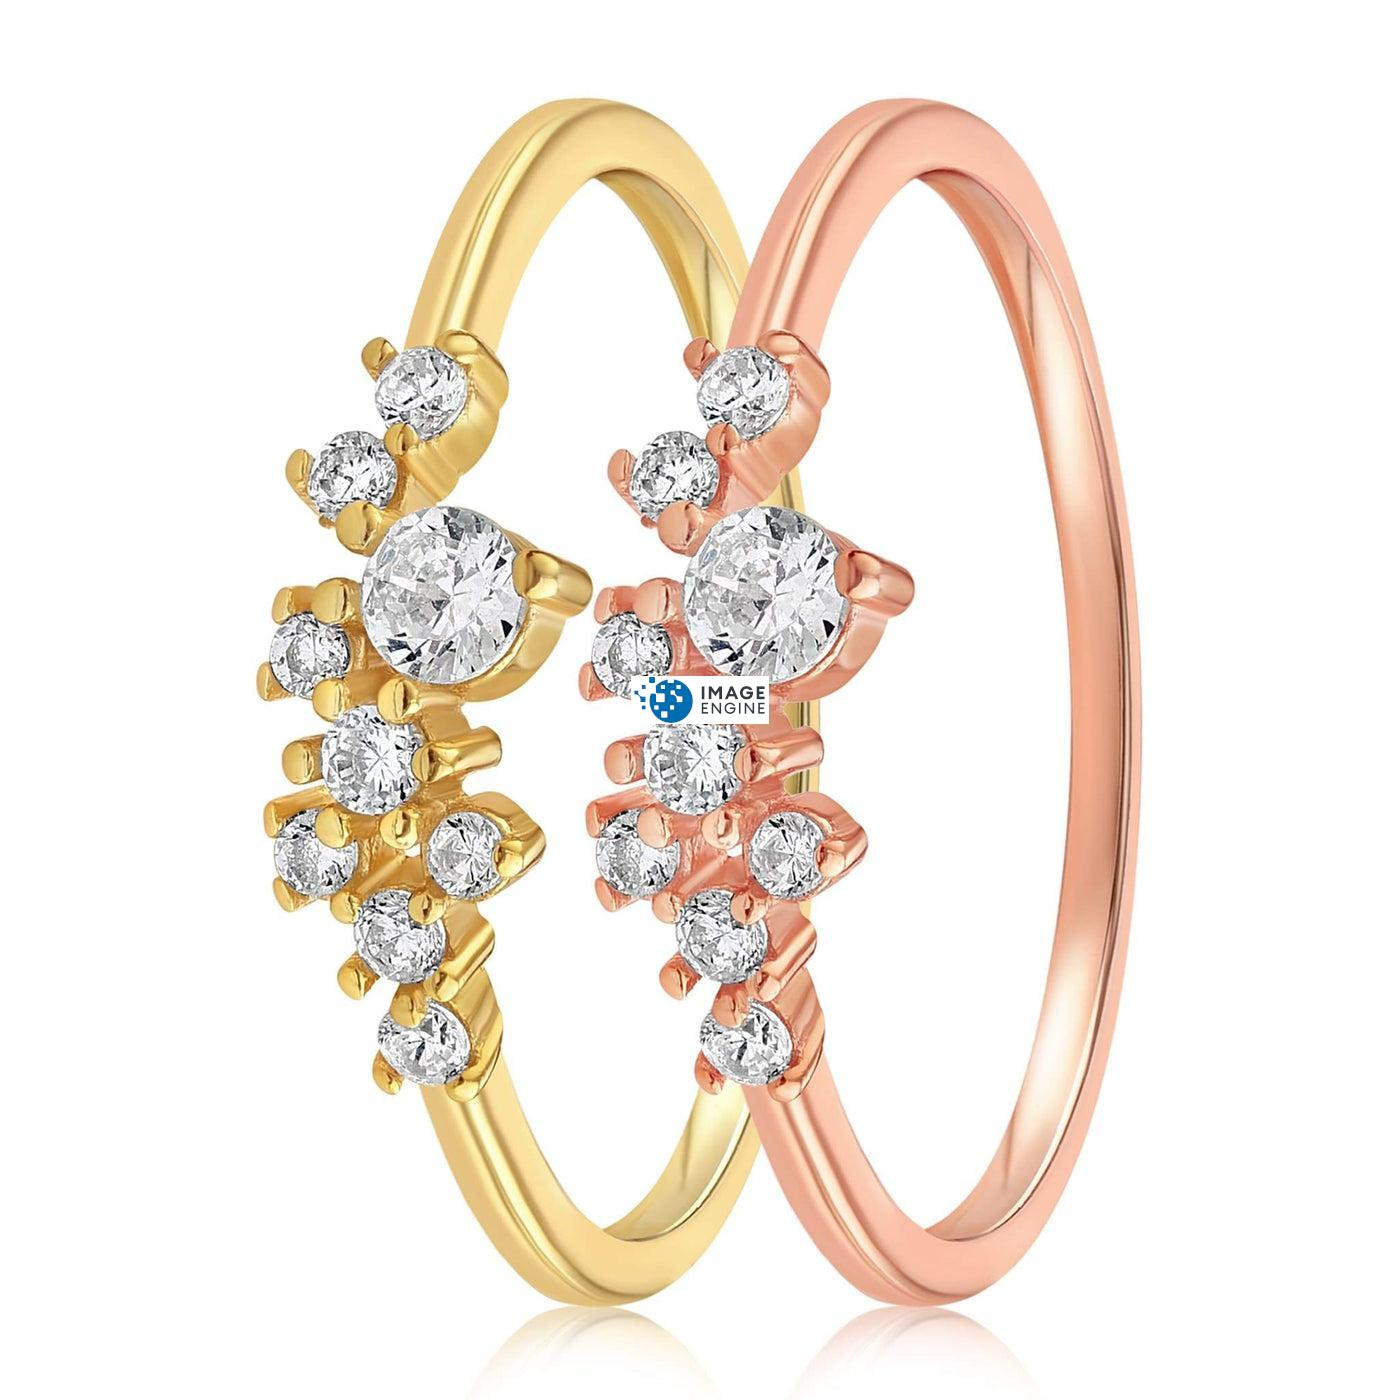 Sasha Sparkle Ring - Side by Side - 18K Yellow Gold Vermeil and 18K Rose Gold Vermeil